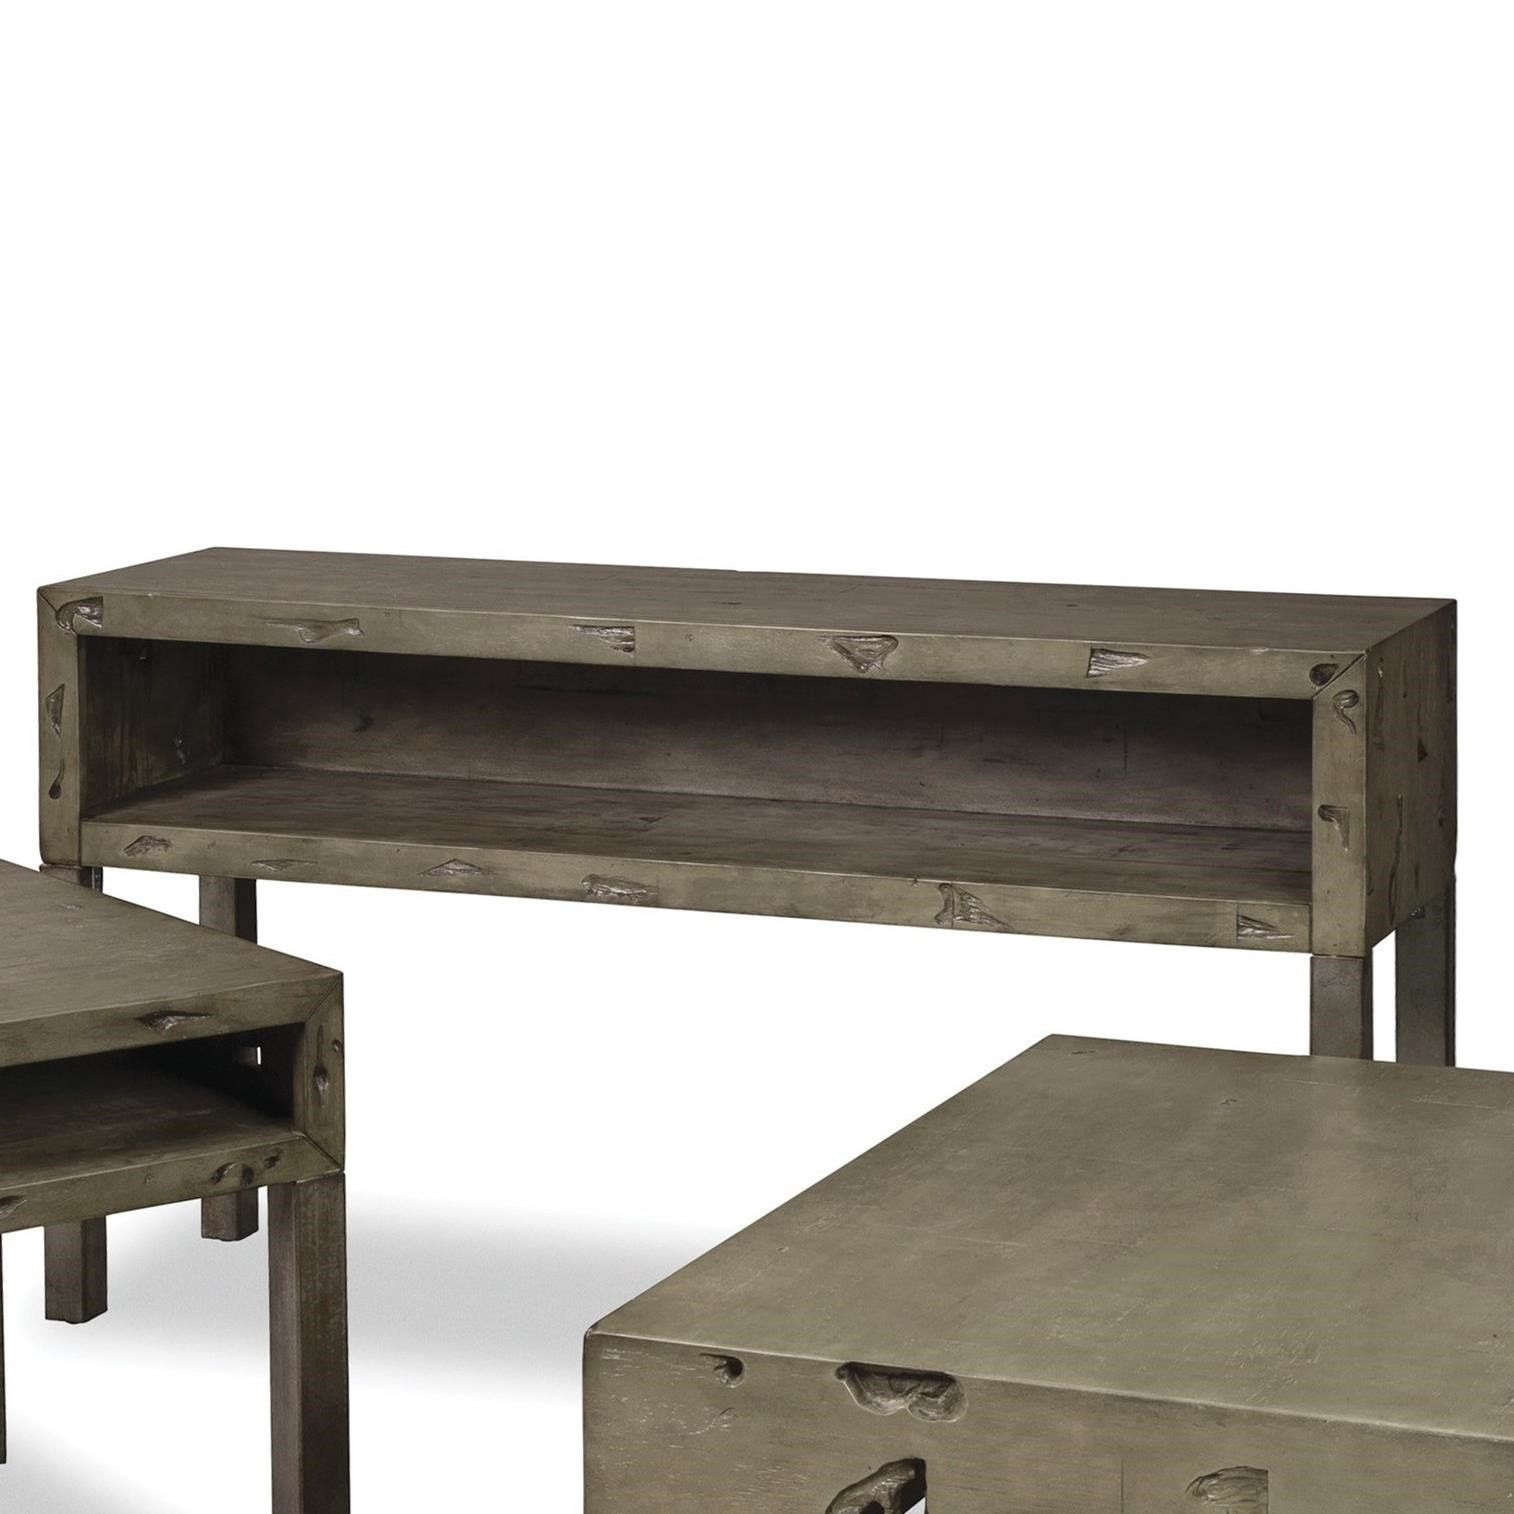 991 Tables Sofa Table by Craftmaster at Esprit Decor Home Furnishings